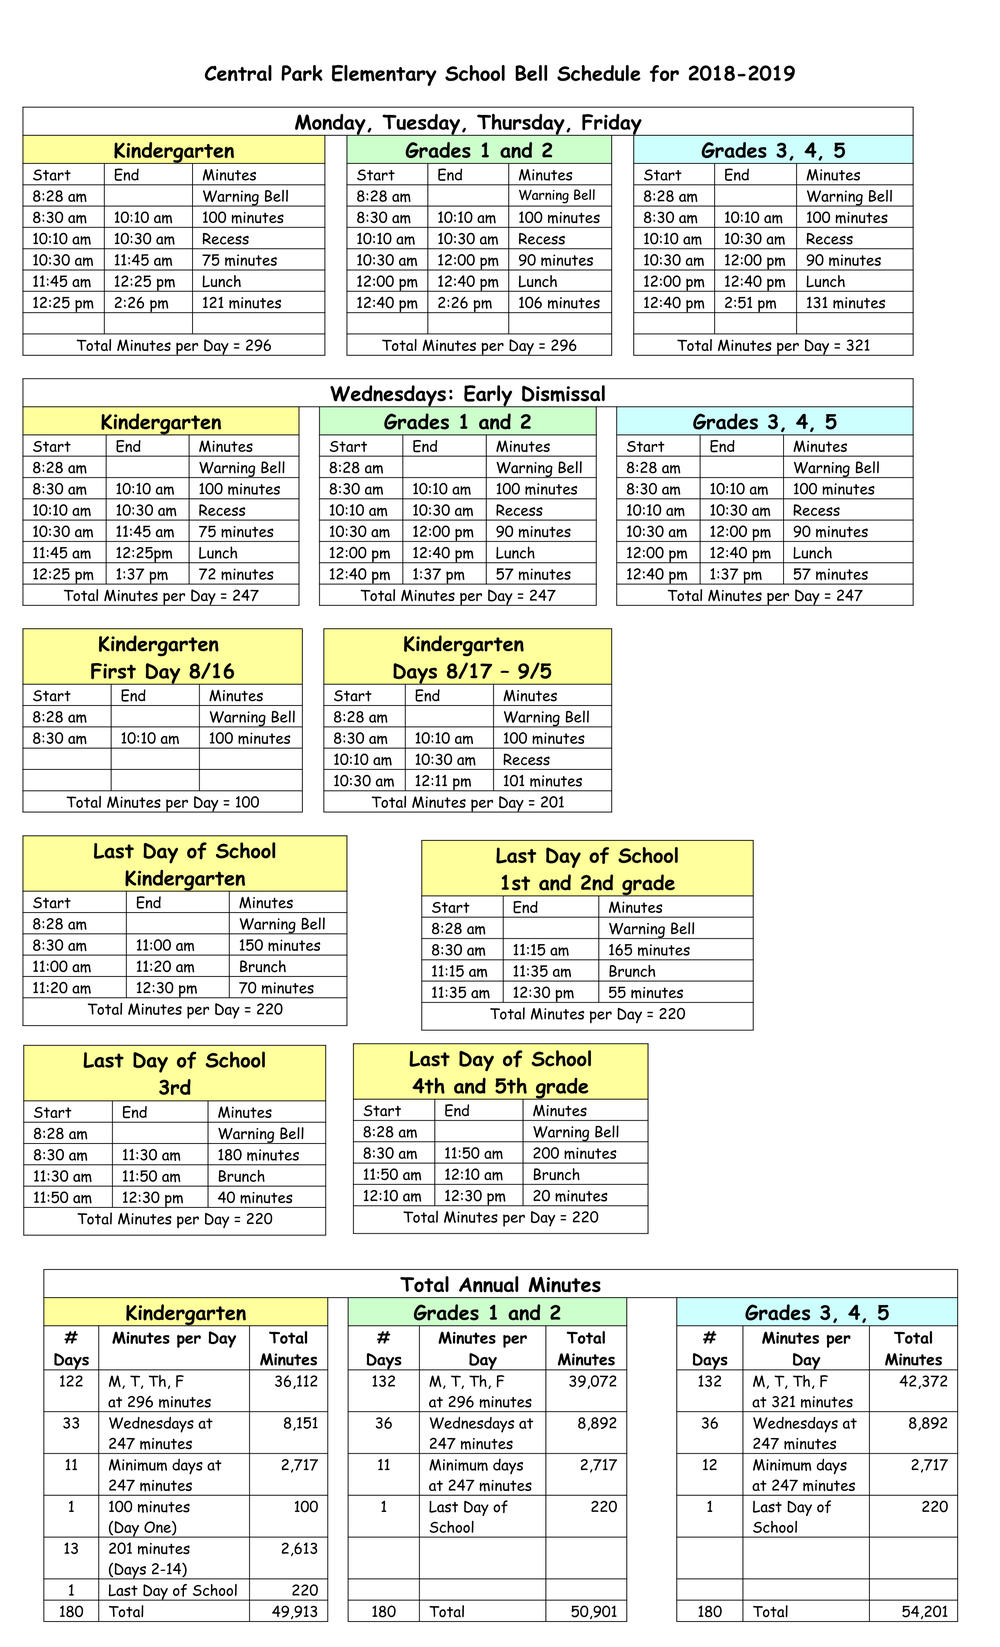 Central Park Elementary Bell Schedule 2018-19